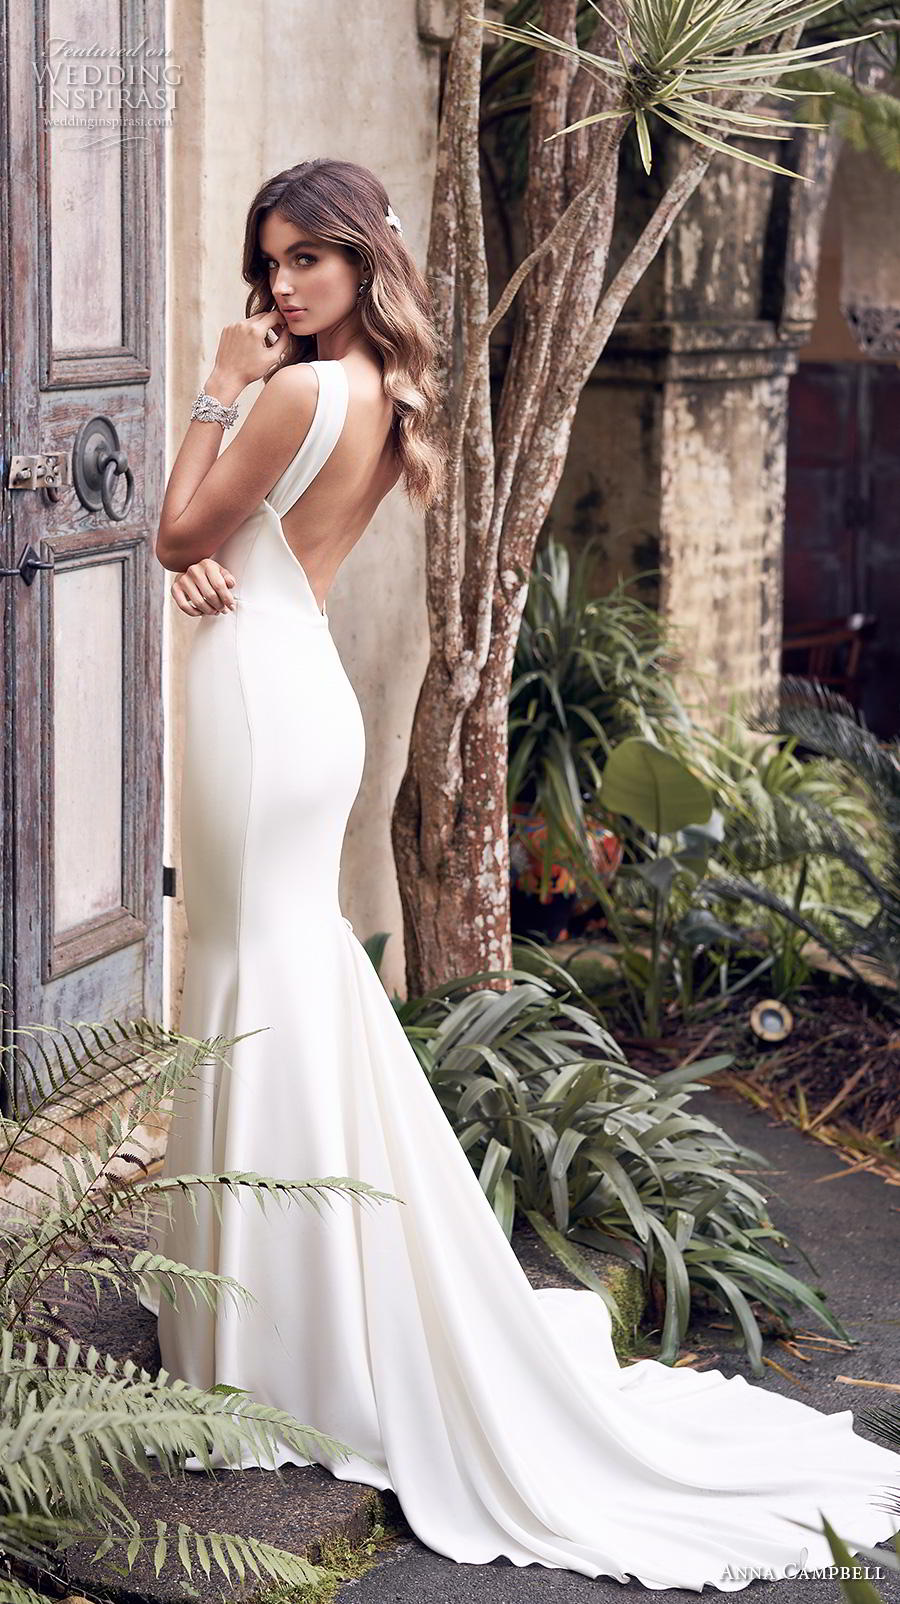 anna campbell 2019 bridal sleeveless halter neck simple embellished waist minimalist elegant fit and flare sheath wedding dress open low back chapel train (12) bv